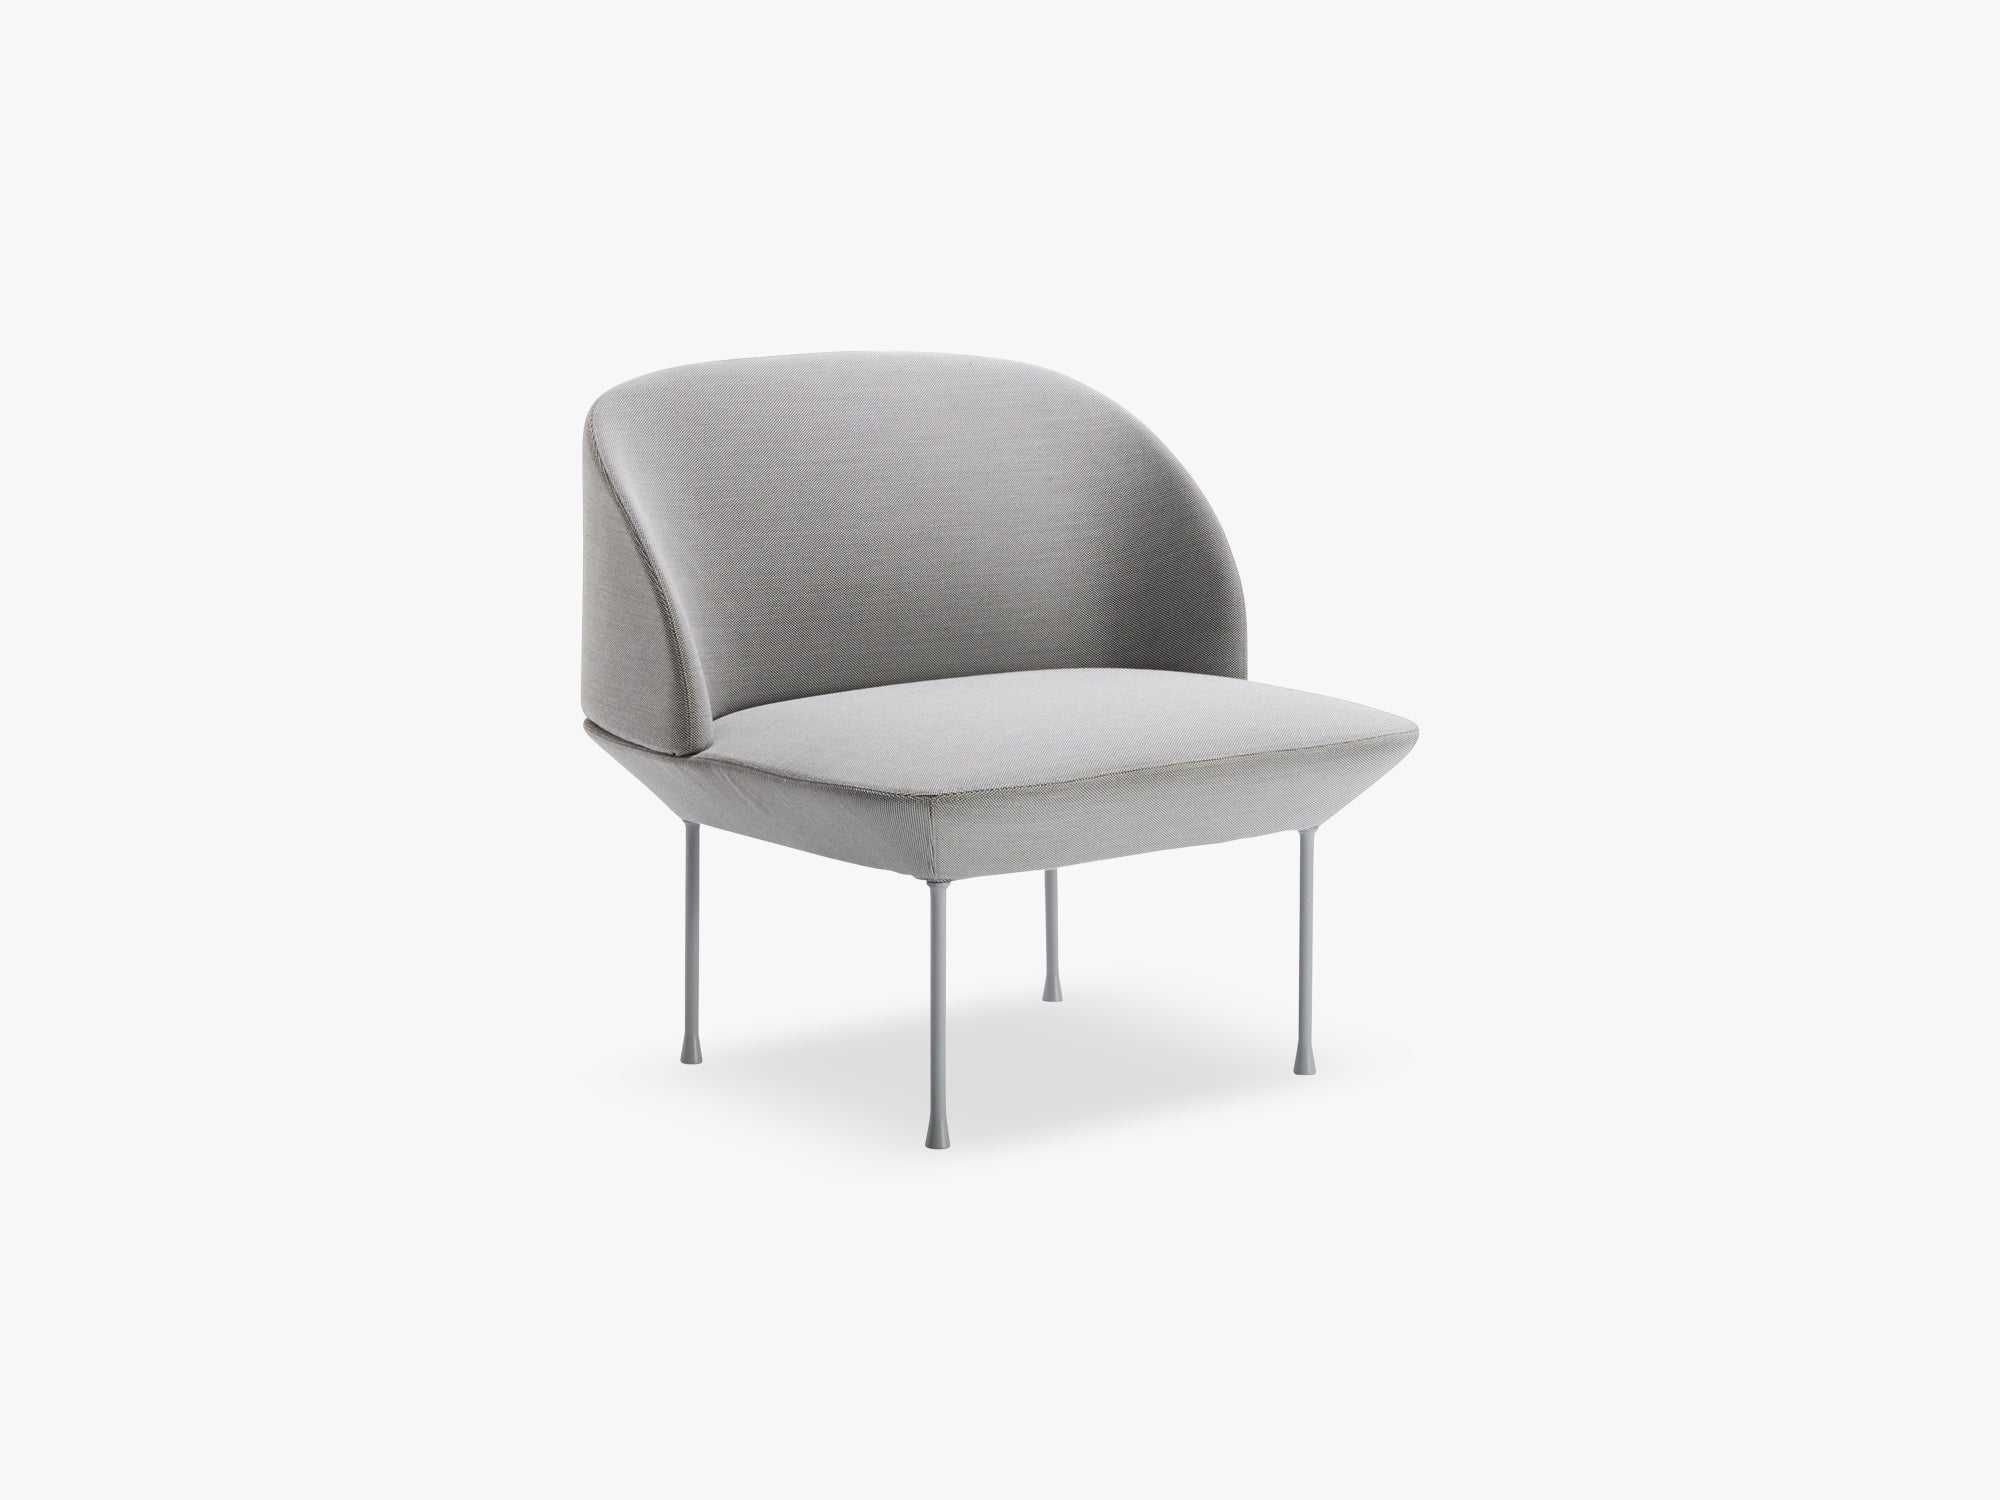 Oslo Lounge Chair / Lounge Chair, Steelcut 160 / Light Grey Legs fra Muuto